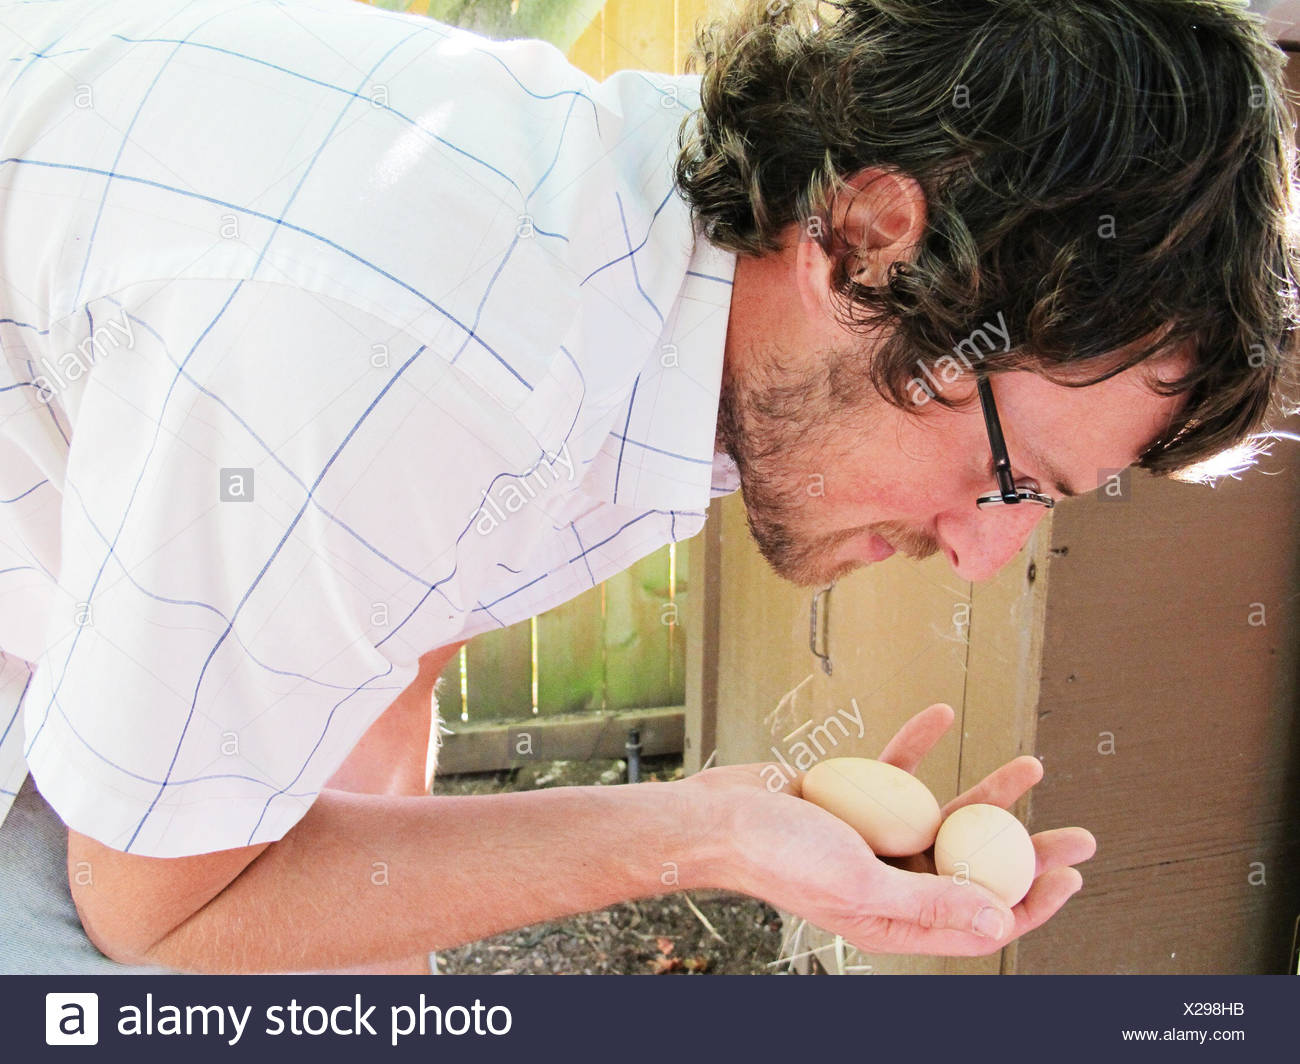 Man gathering eggs from chickens in backyard - Stock Image